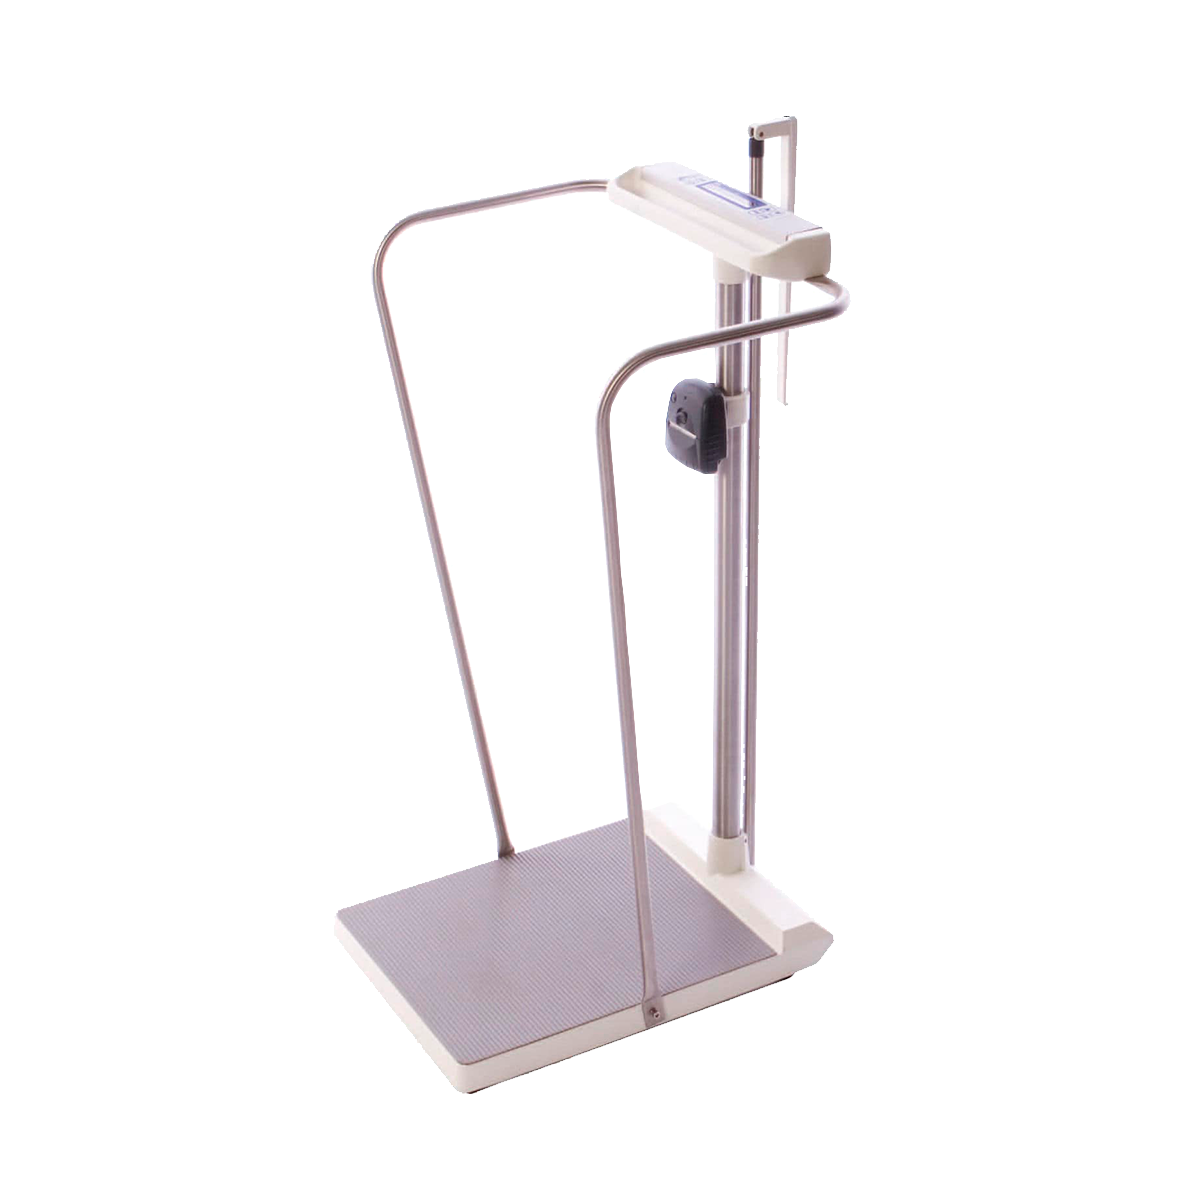 Patient weighing scales